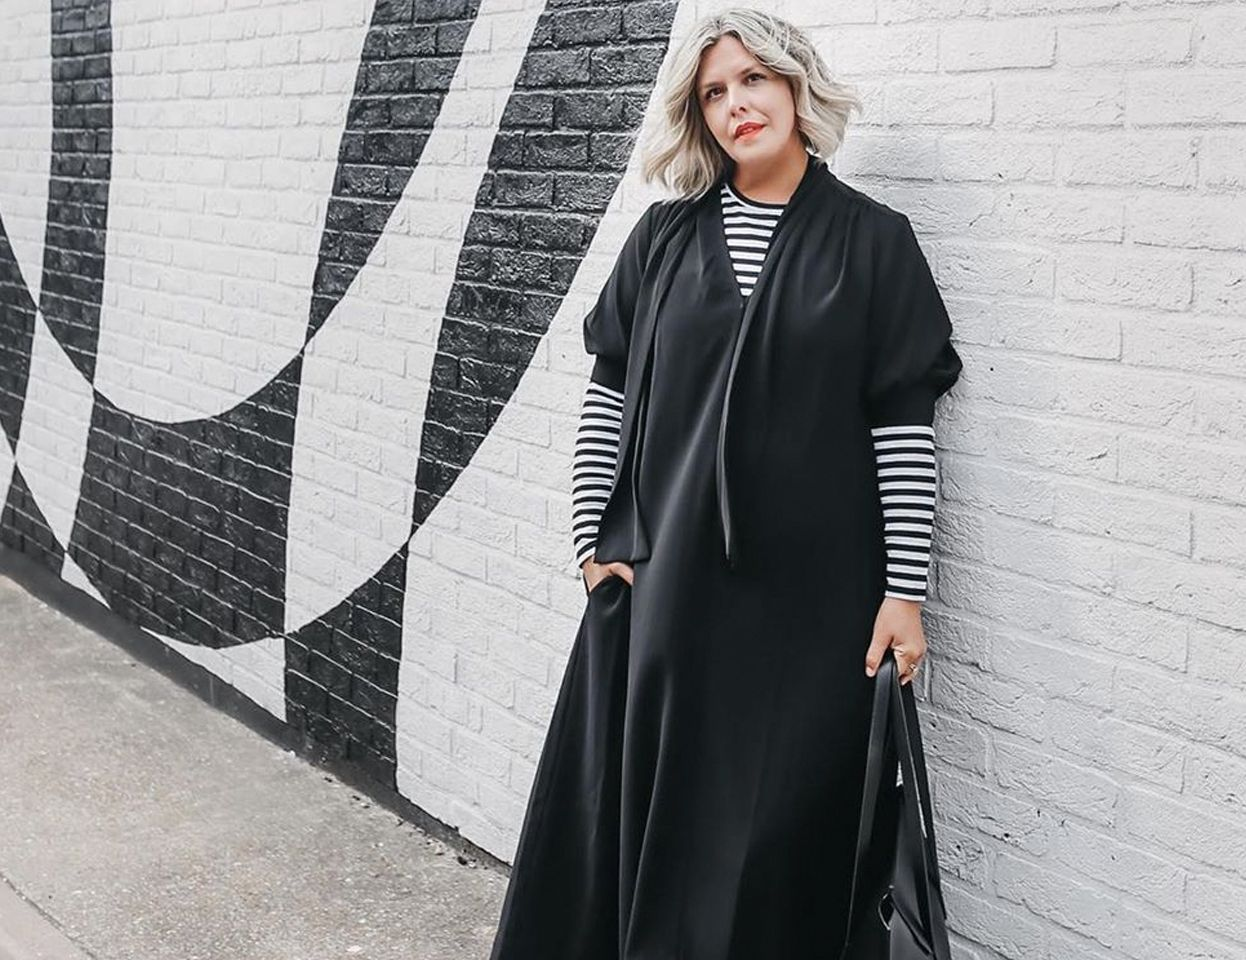 Erica Davies on how to layer like a pro